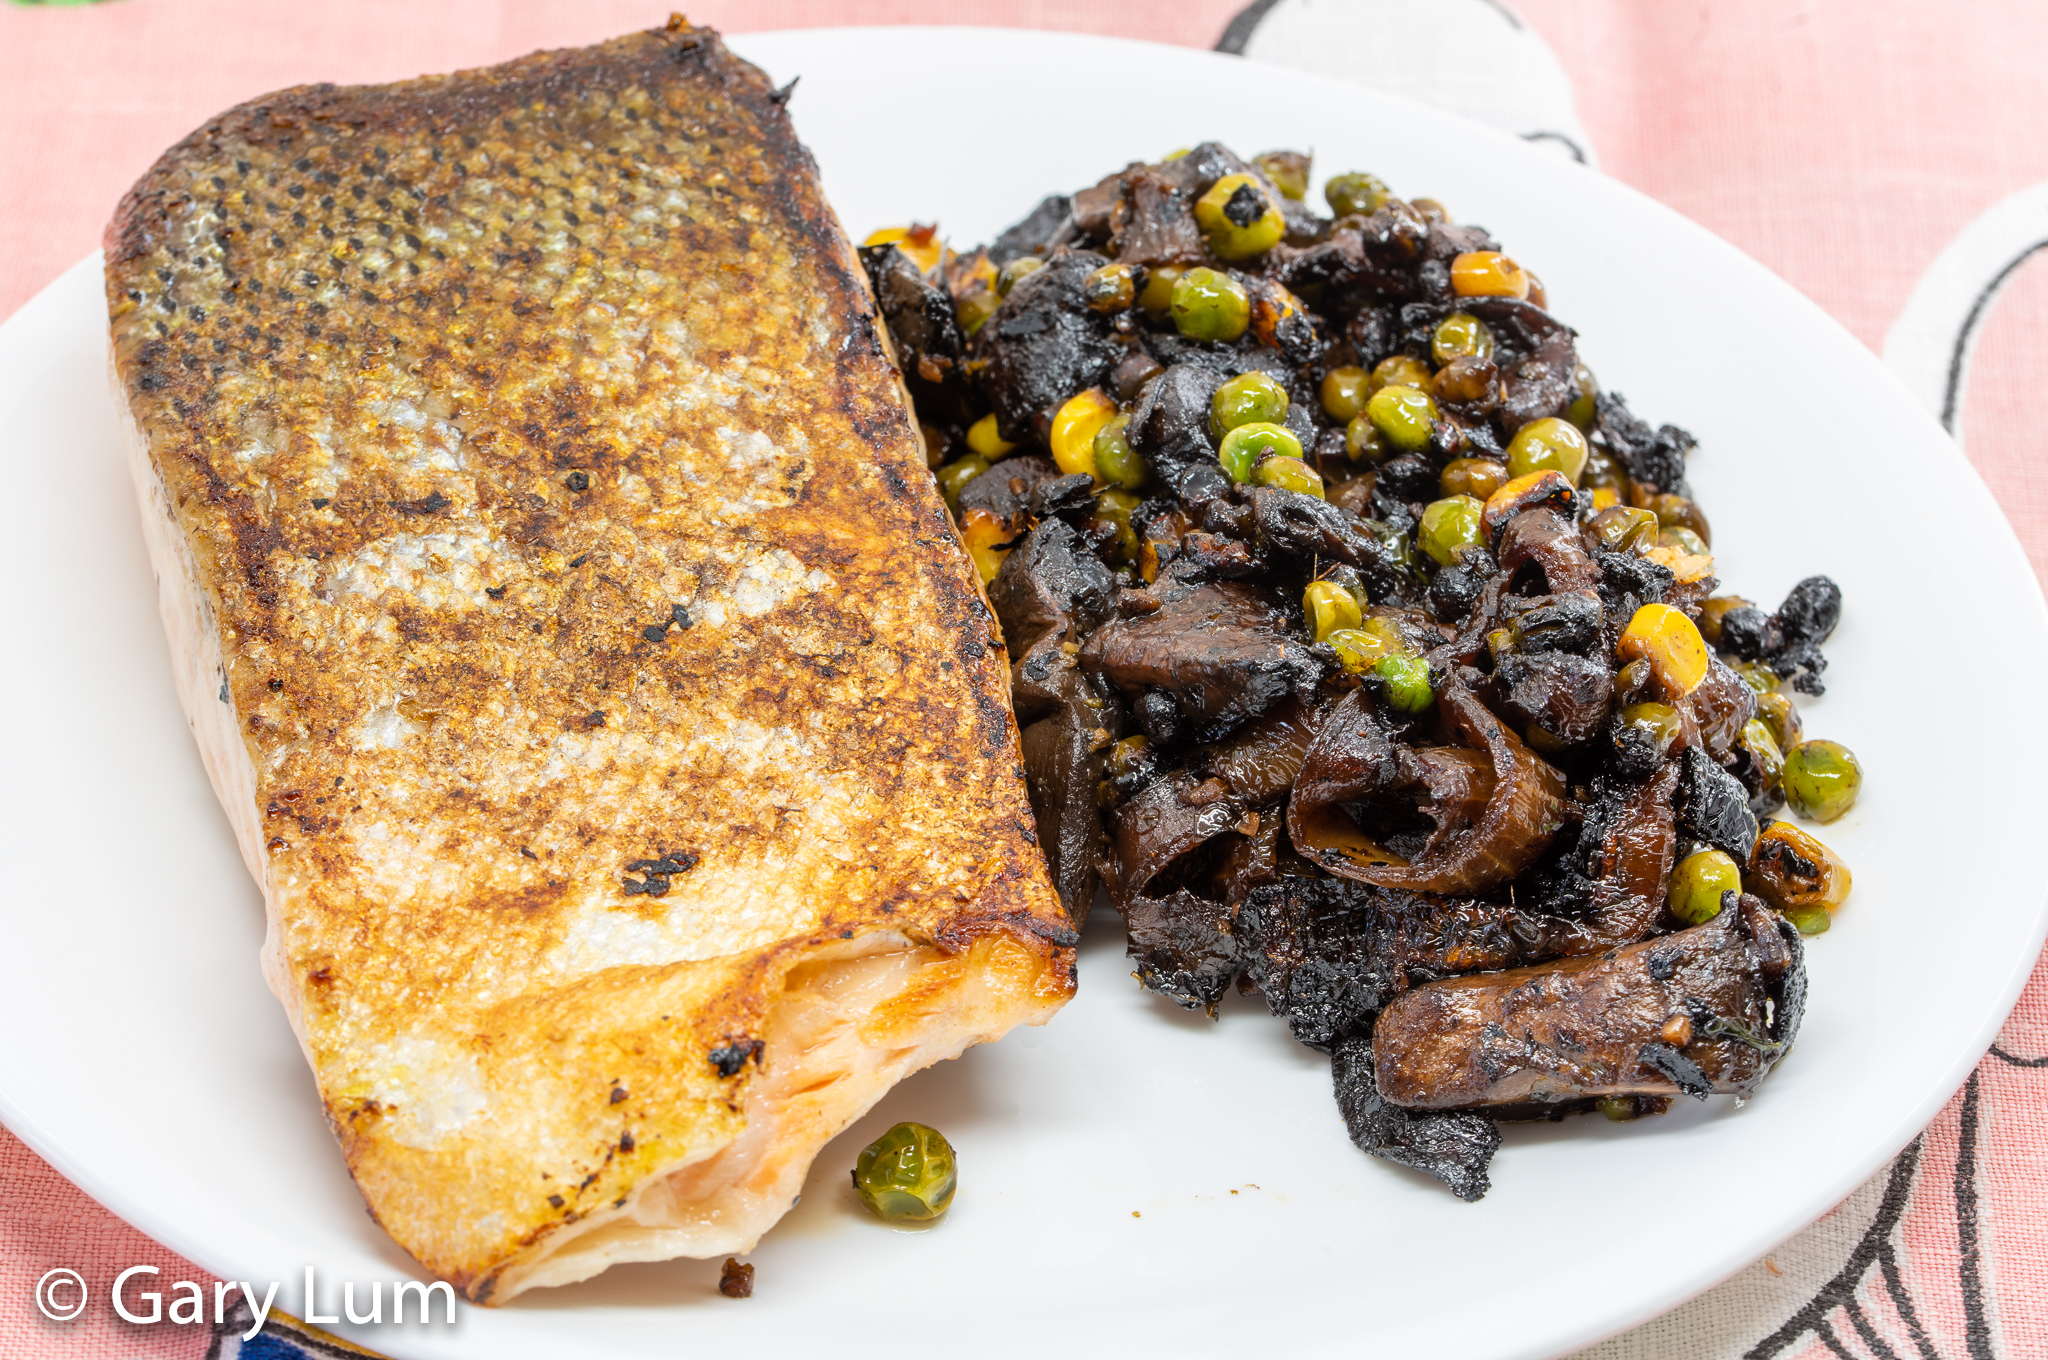 Pan-fried salmon with leftover onion and mushrooms and green and gold vegetables (peas and corn). Gary Lum.